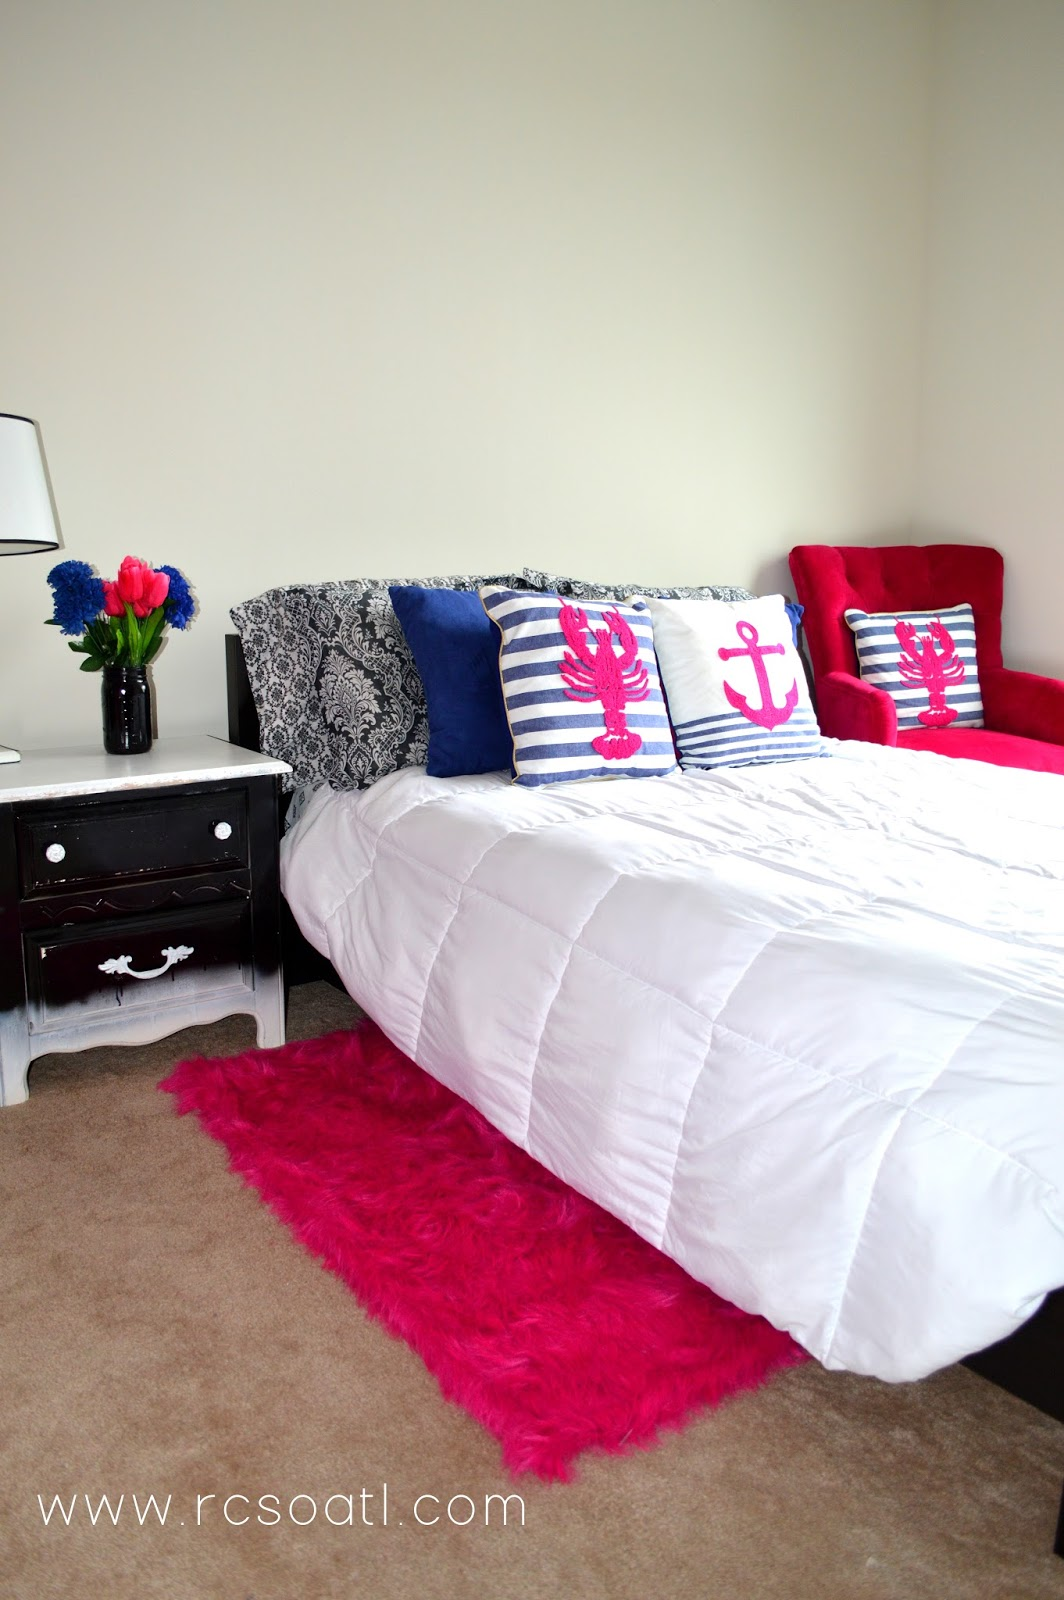 real college student of atlanta my new room hot pink 20568 | hot 2bpink 2band 2bblue 2bbedroom 2bdecor 2b2 jpg